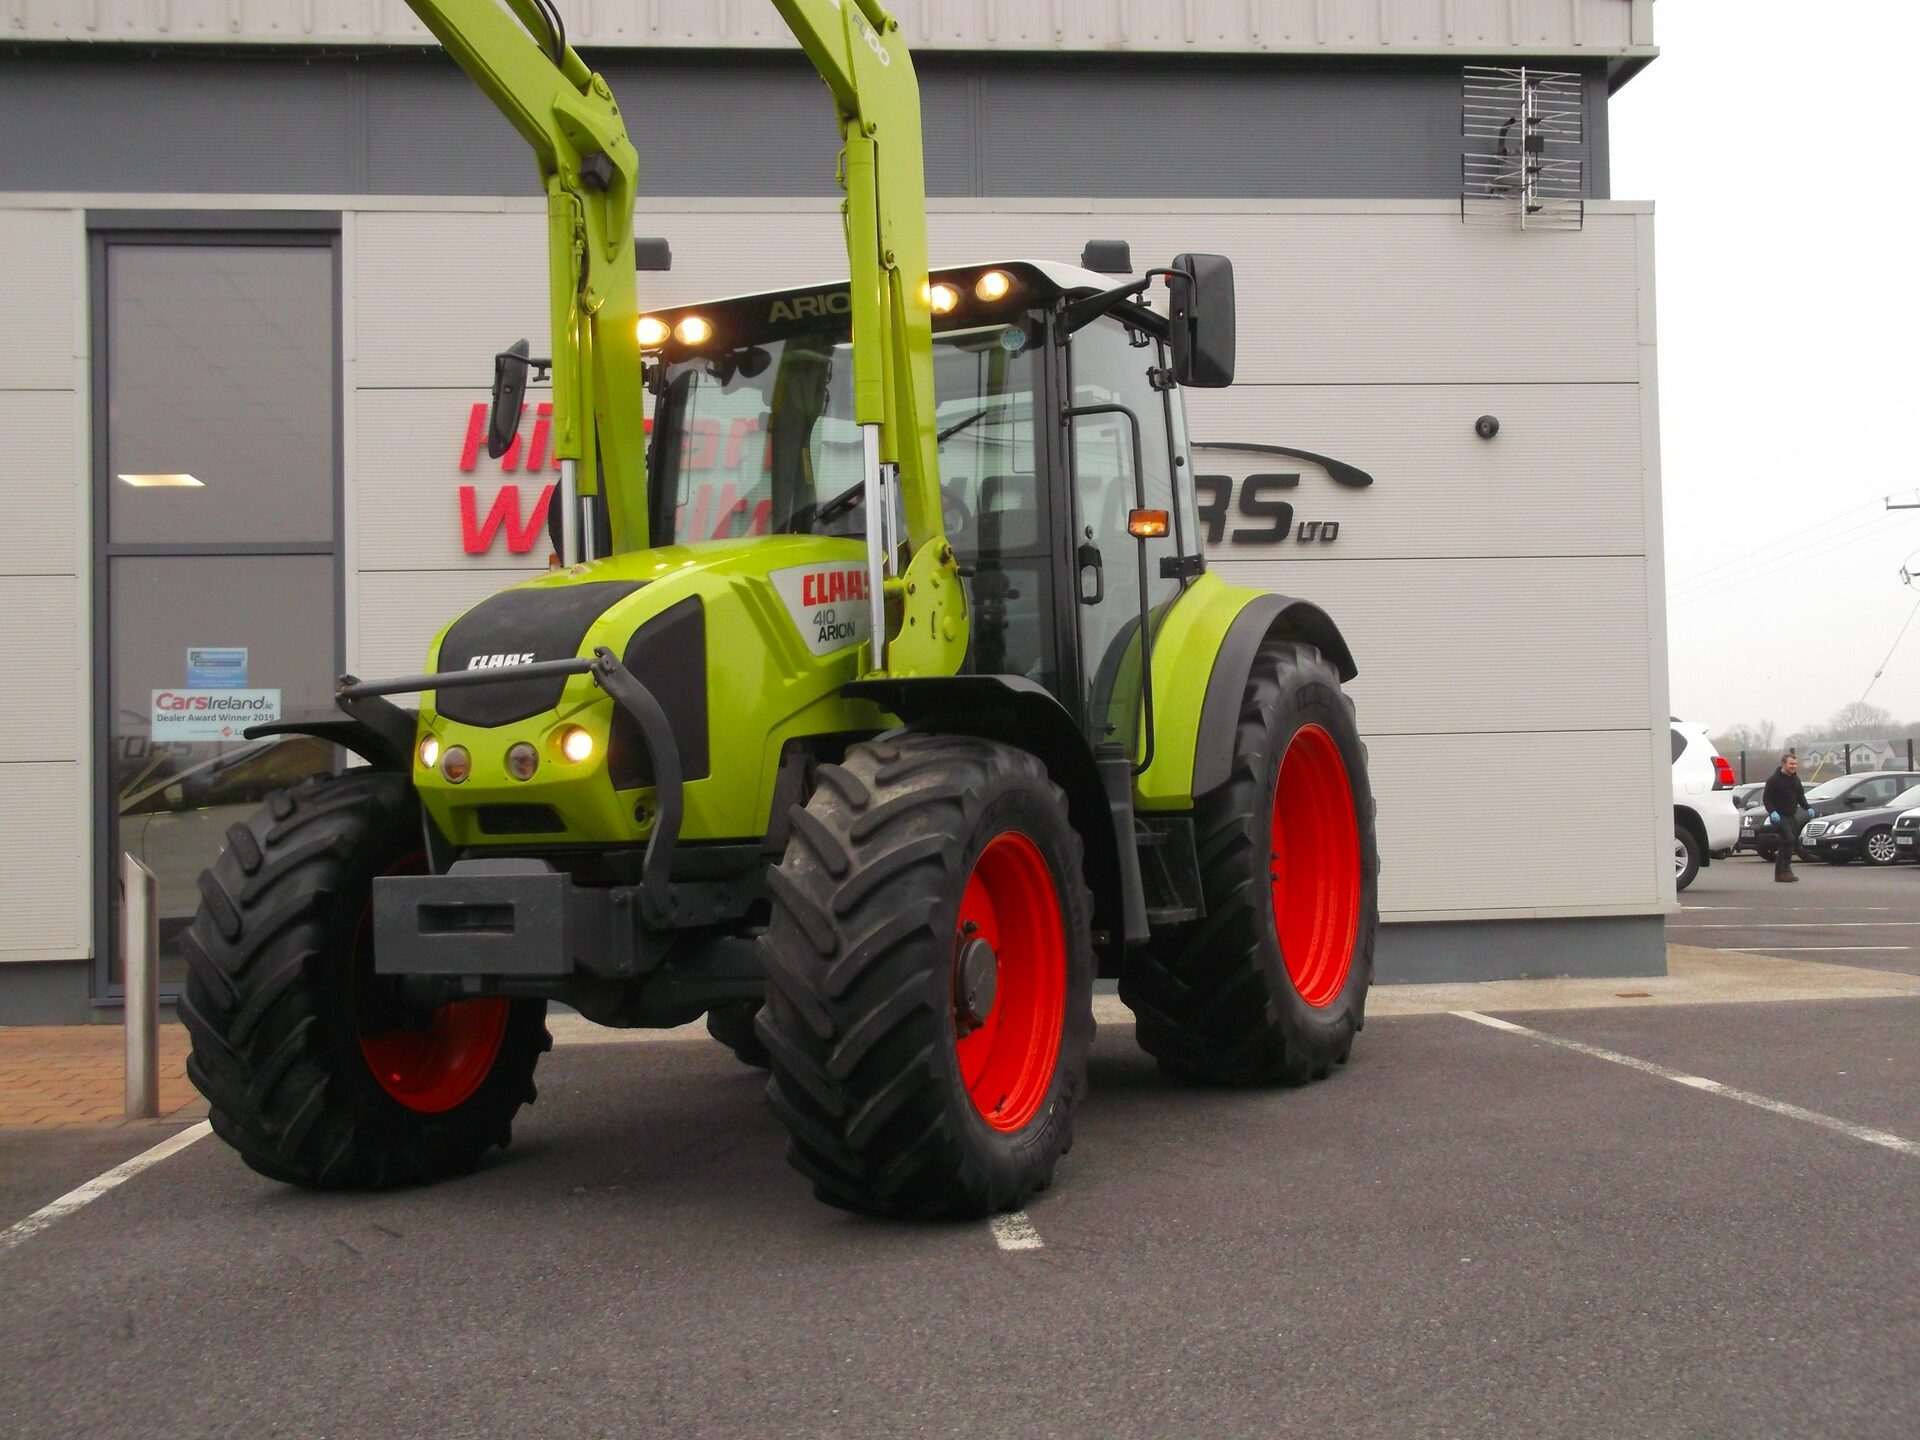 Used Class Arion 410 2016 in Mayo